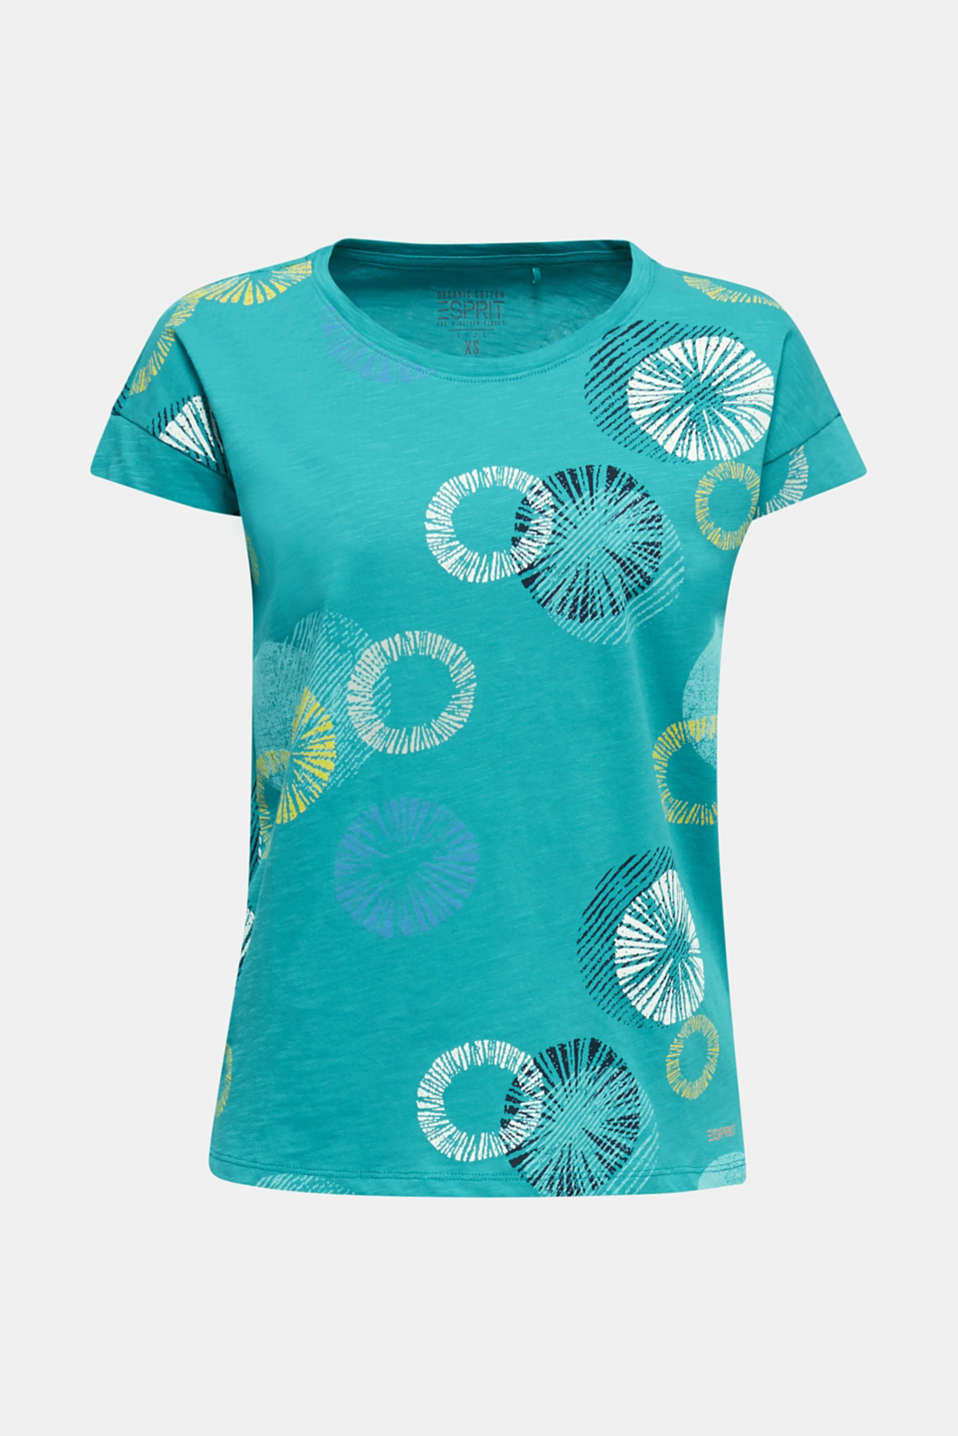 Printed T-shirt in 100% organic cotton, TEAL GREEN, detail image number 7